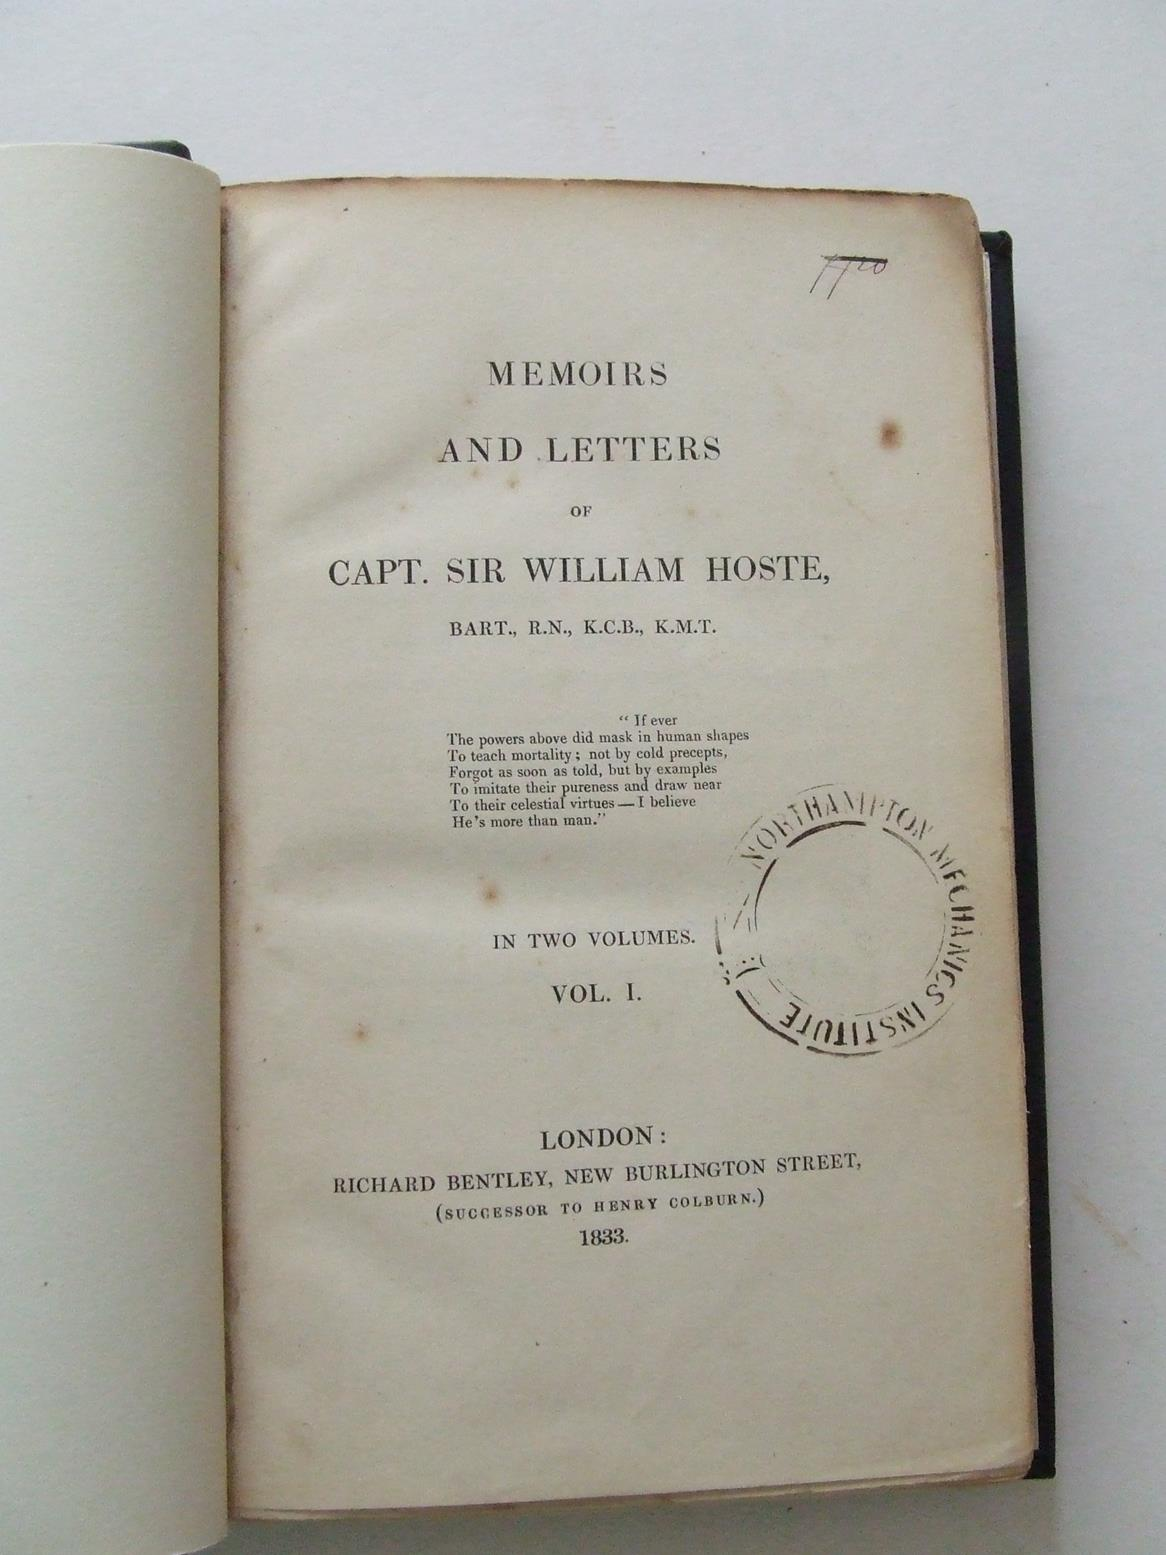 Memoirs and Letters of Capt. Sir William Hoste